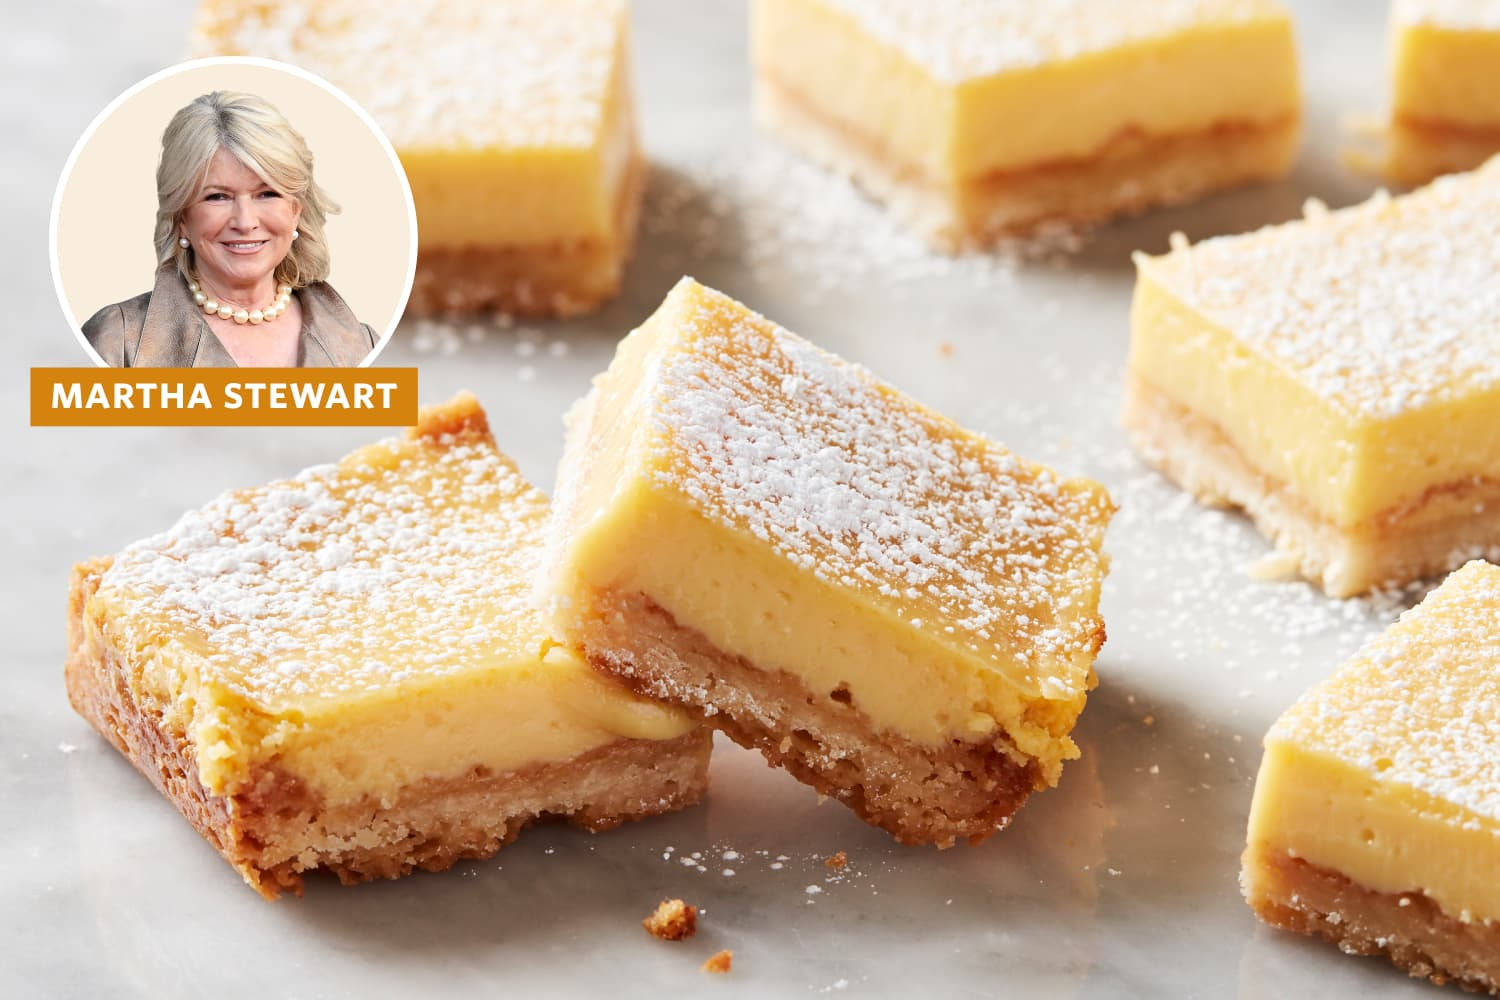 The $3 Pantry Ingredient That Makes Martha Stewart's Lemon Bars So Good